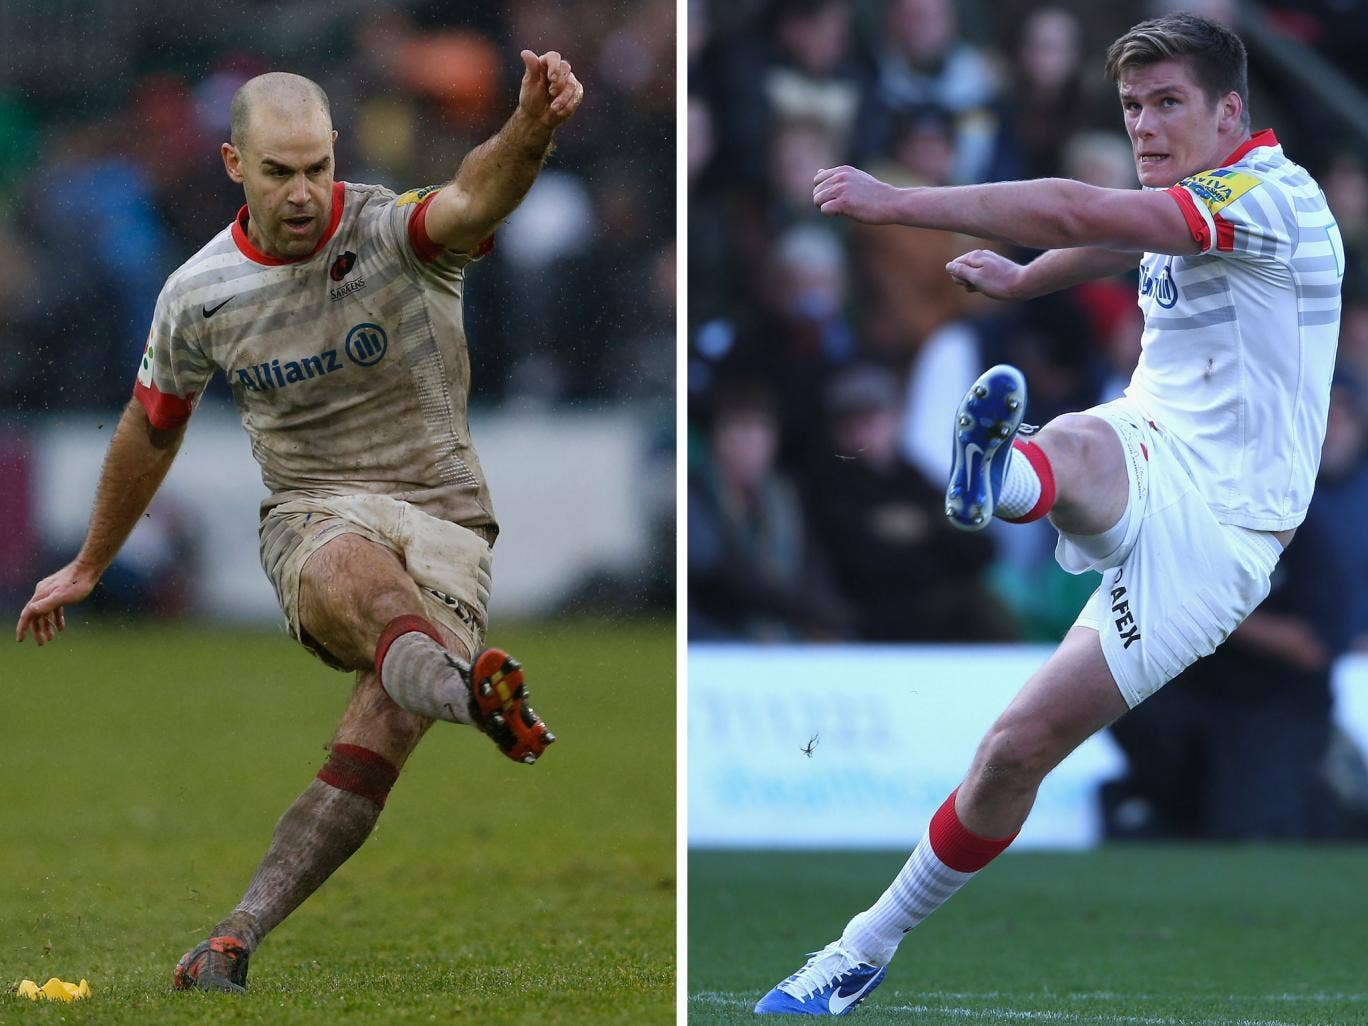 Making a point: Saracens see the many penalties converted by Charlie Hodgson (left) and Owen Farrell as reward for the team's pressure